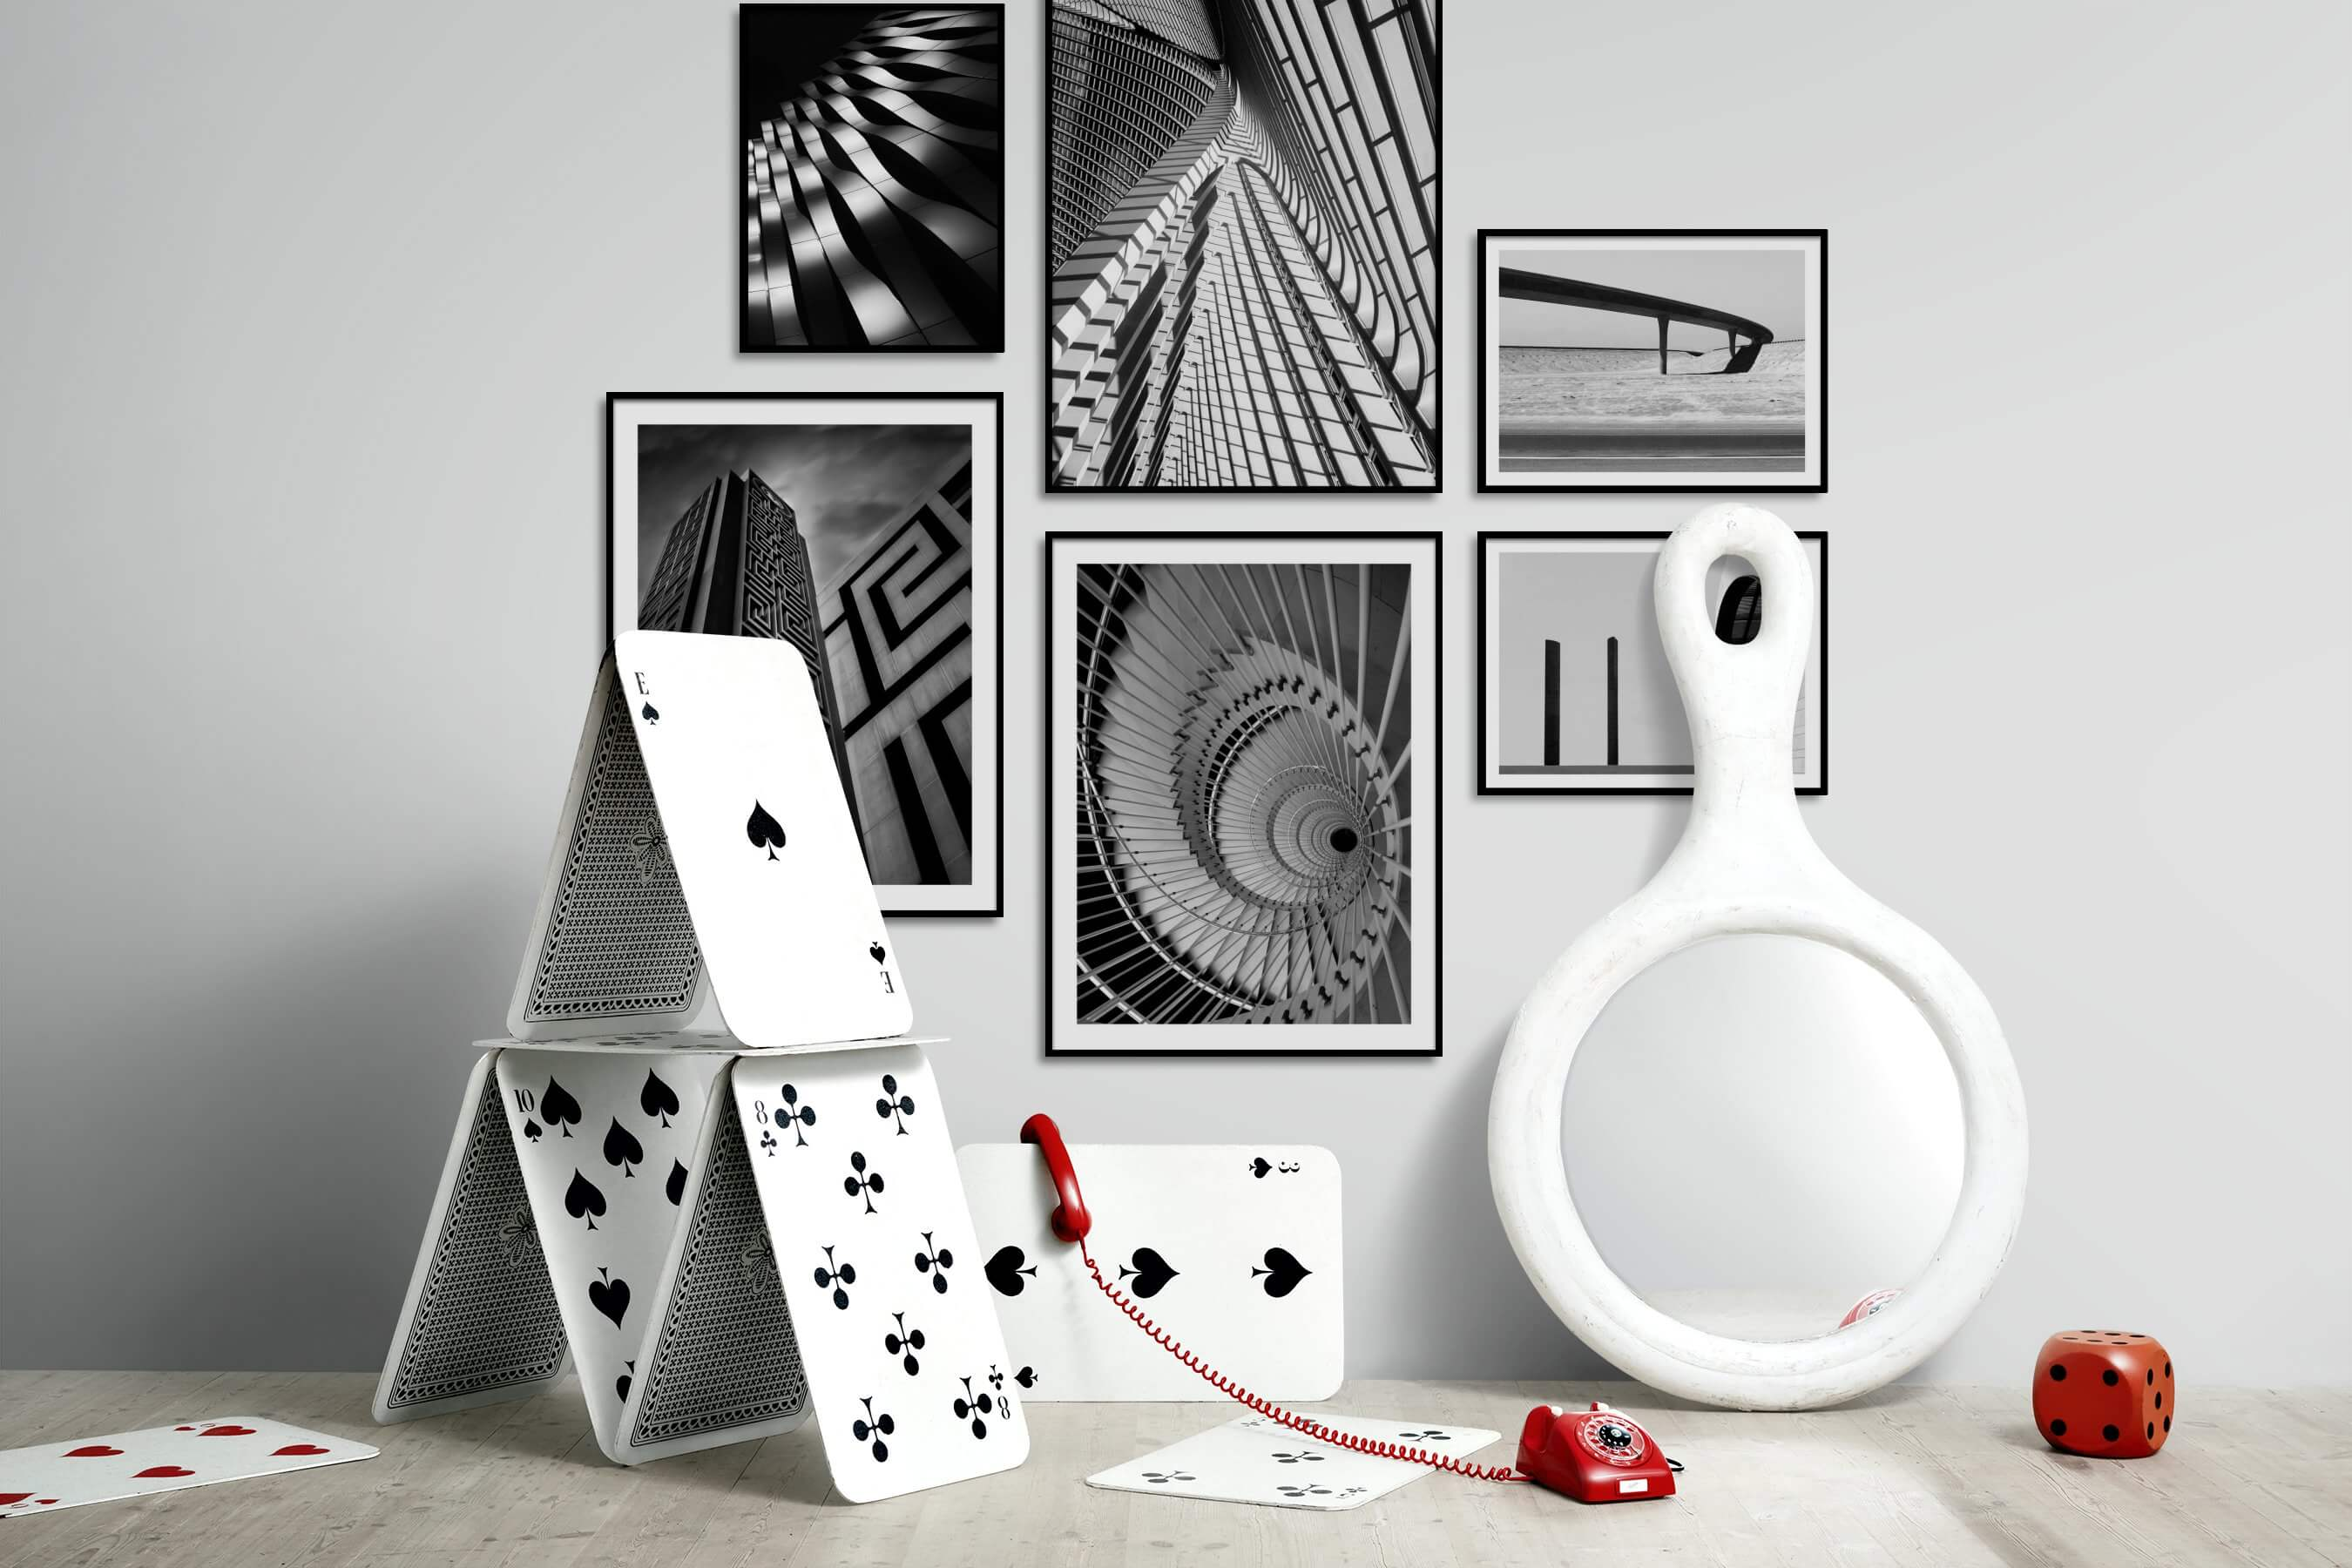 Gallery wall idea with six framed pictures arranged on a wall depicting Black & White, For the Moderate, For the Maximalist, City Life, Country Life, and For the Minimalist